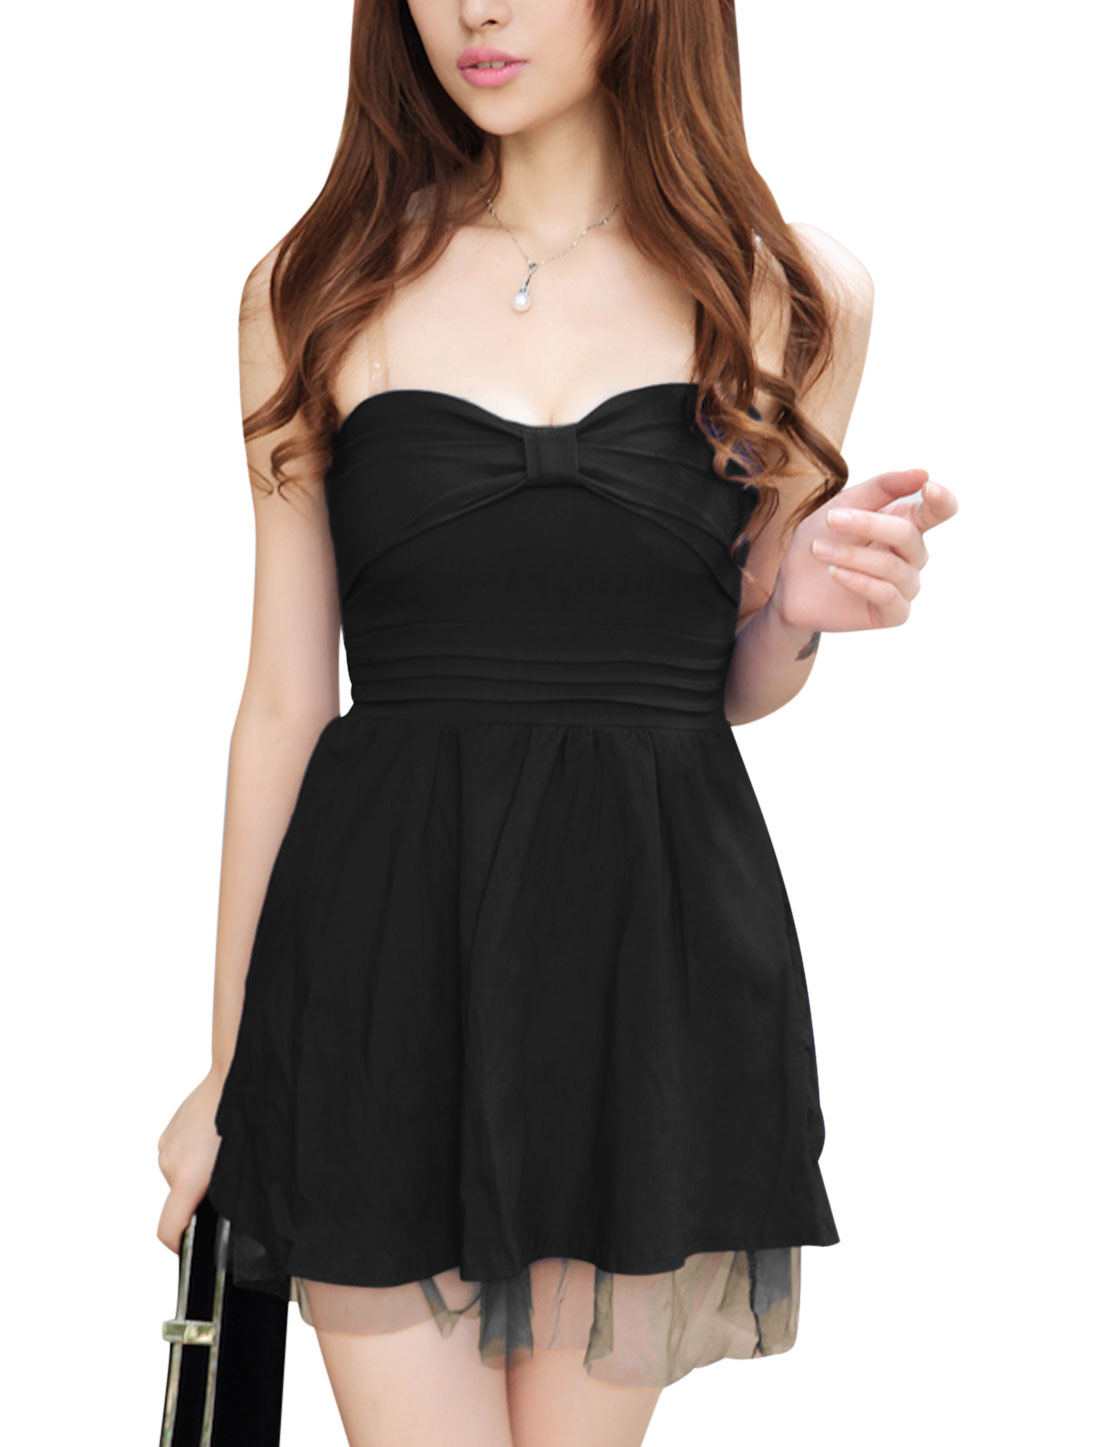 Ladies Black Lace-Up Back Sweetheart Neckline Mesh layered Hem Corset Dress XS